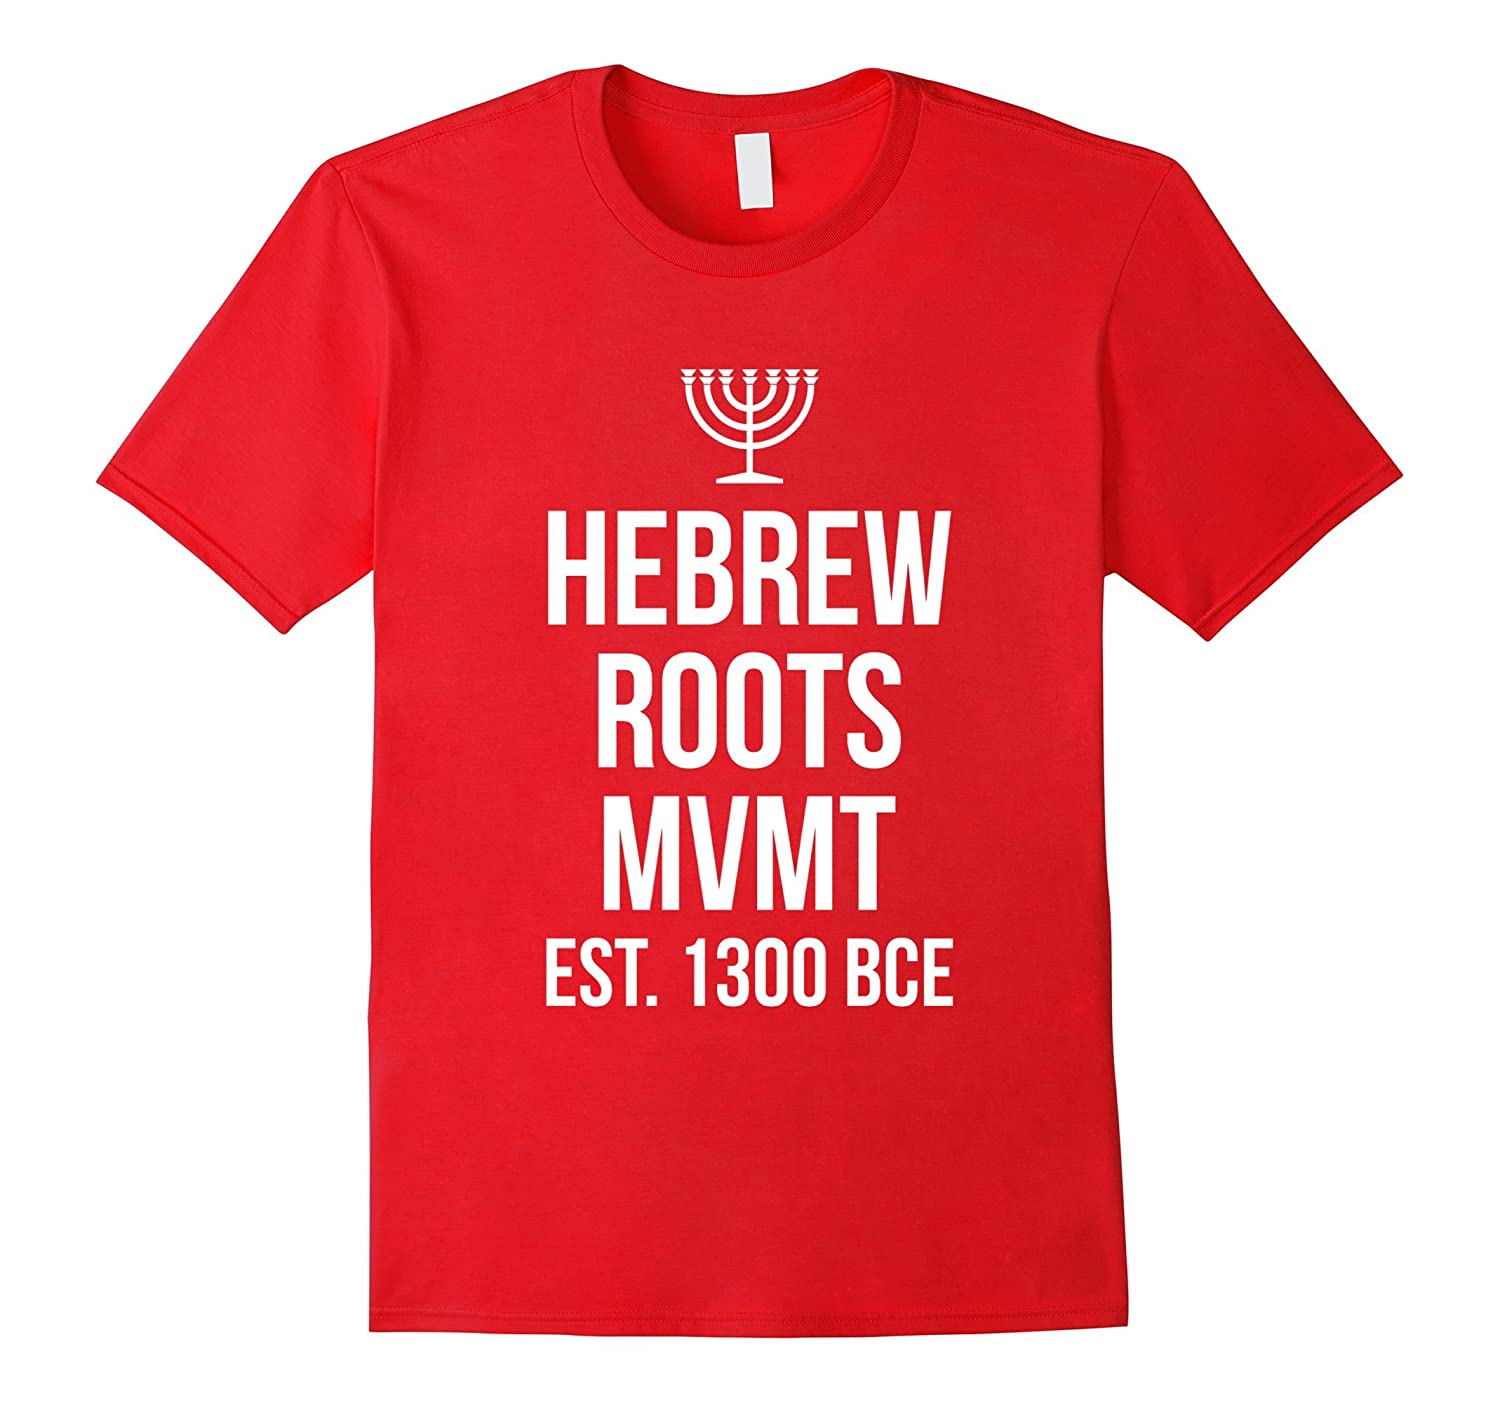 Hebrew Israelite Roots Movement T-shirt Yeshua Yahwew Torah